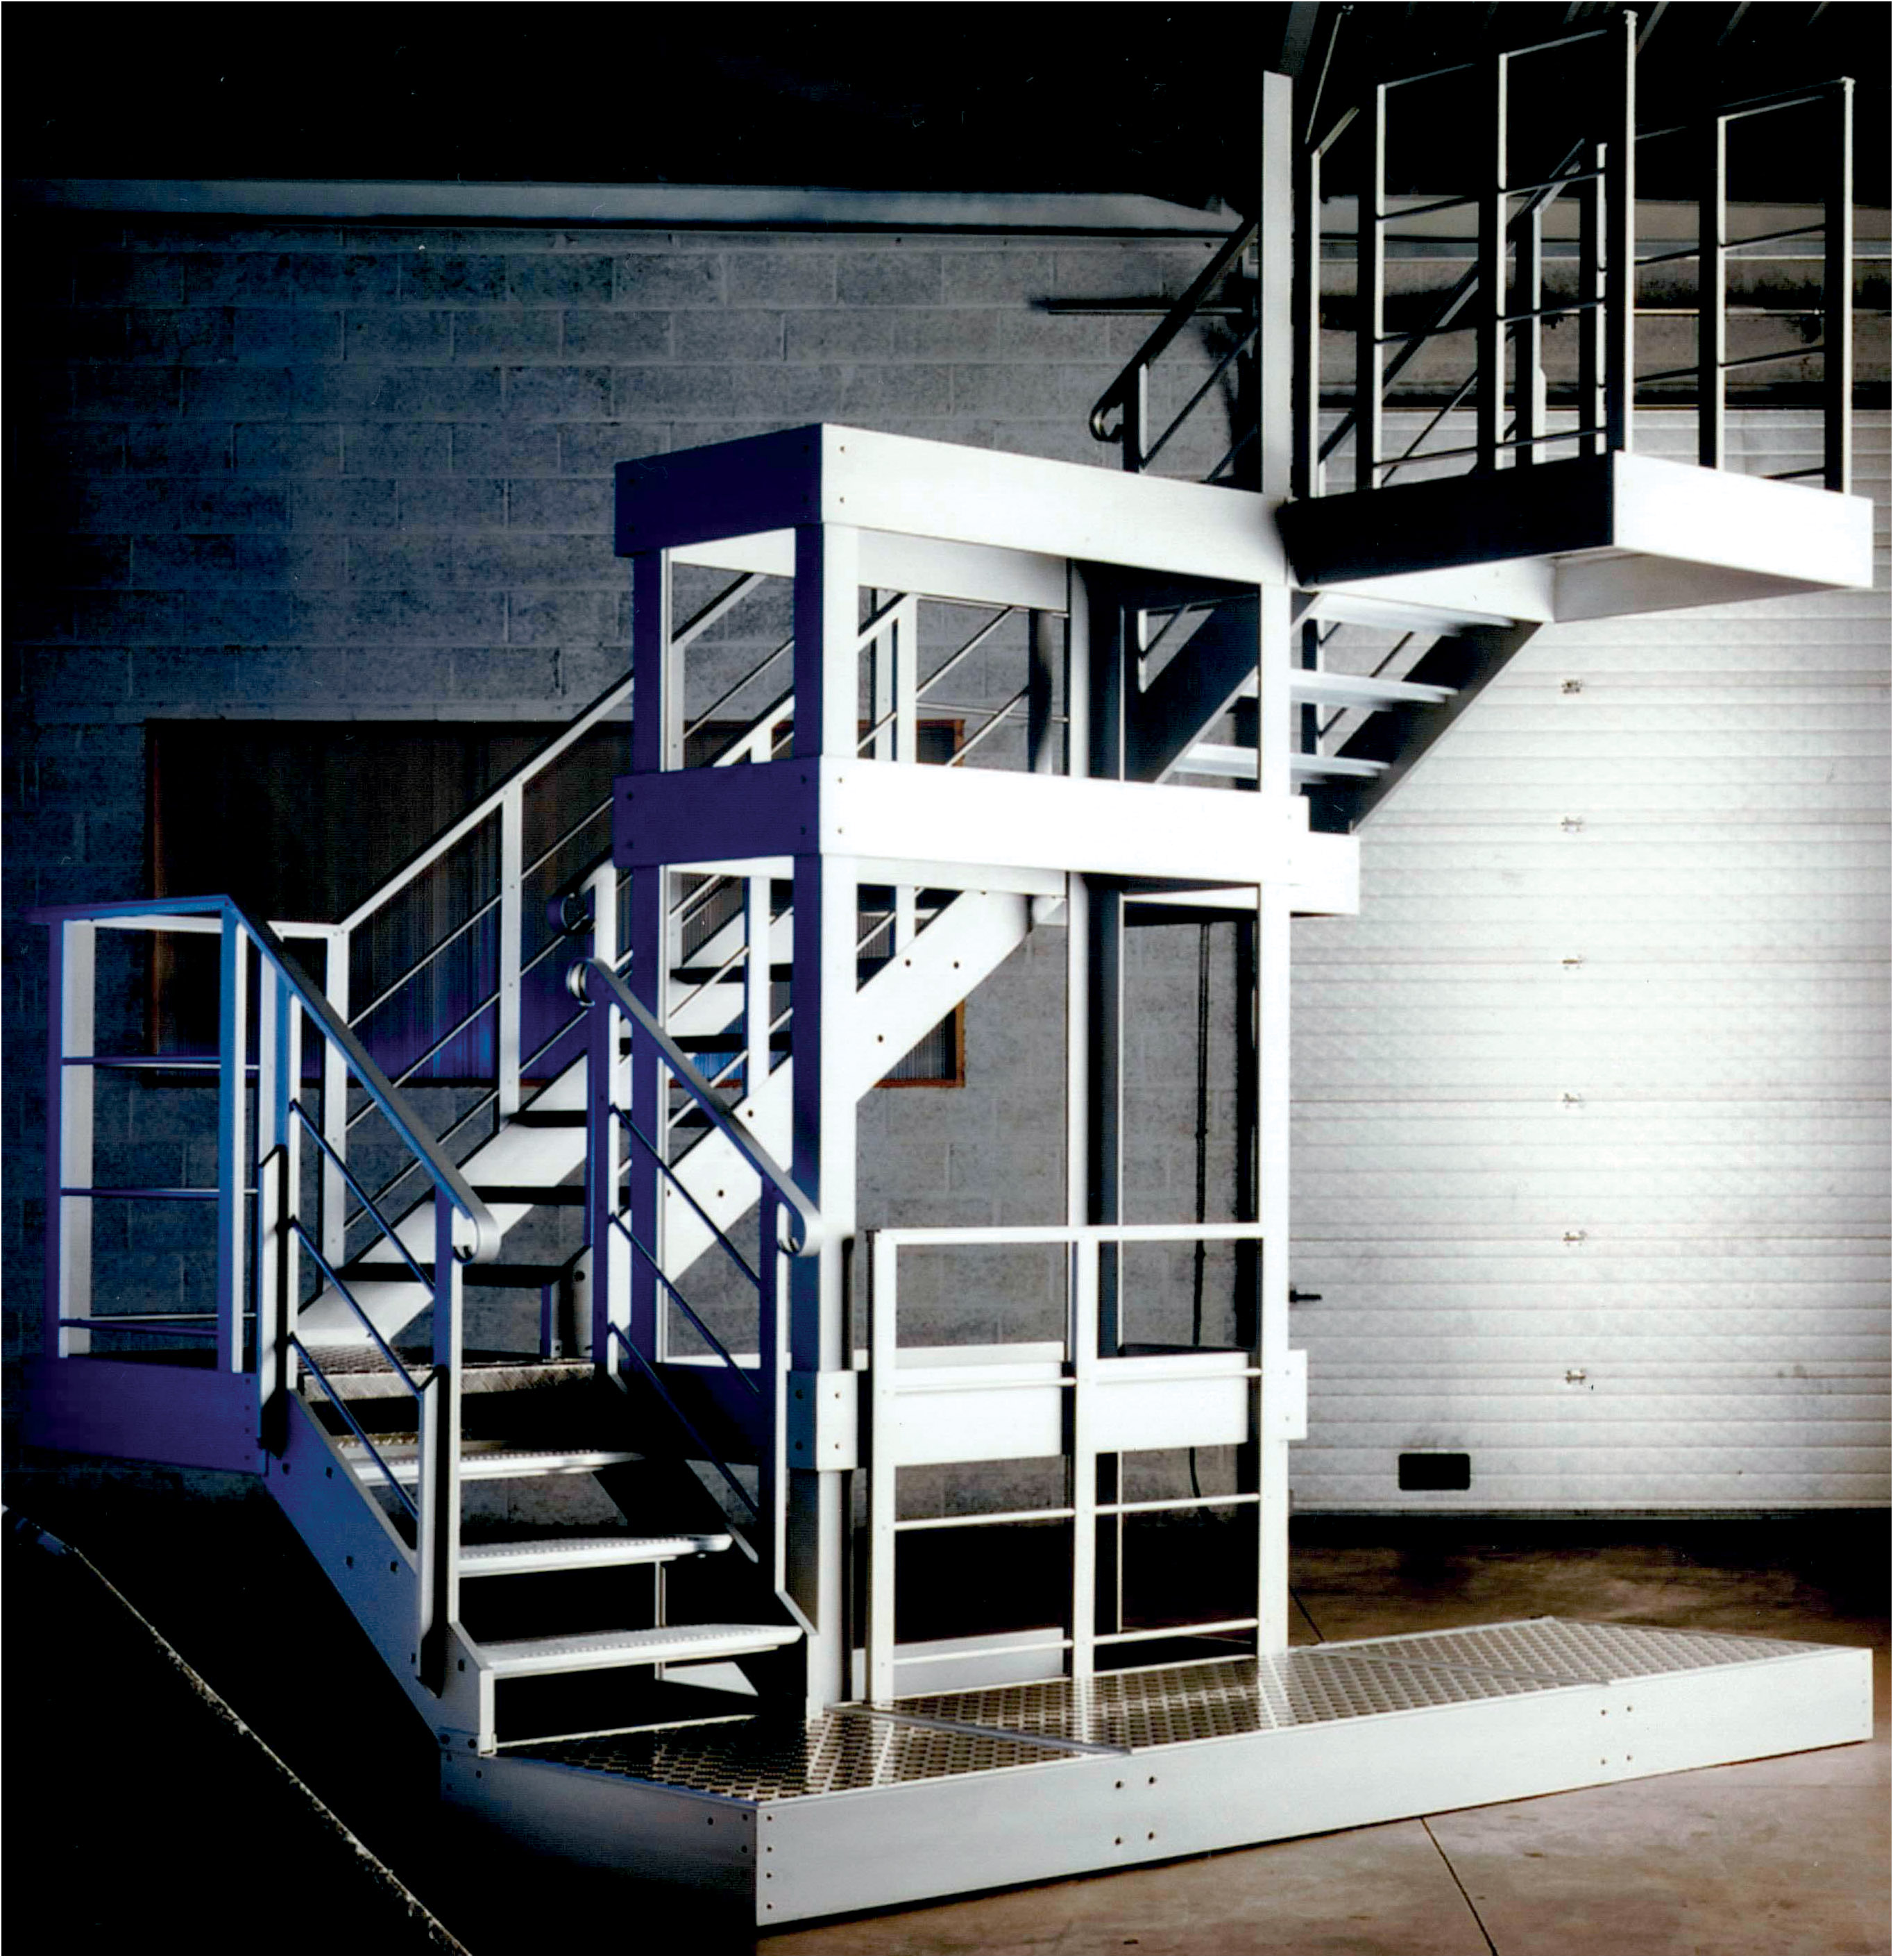 Rectangular stairs